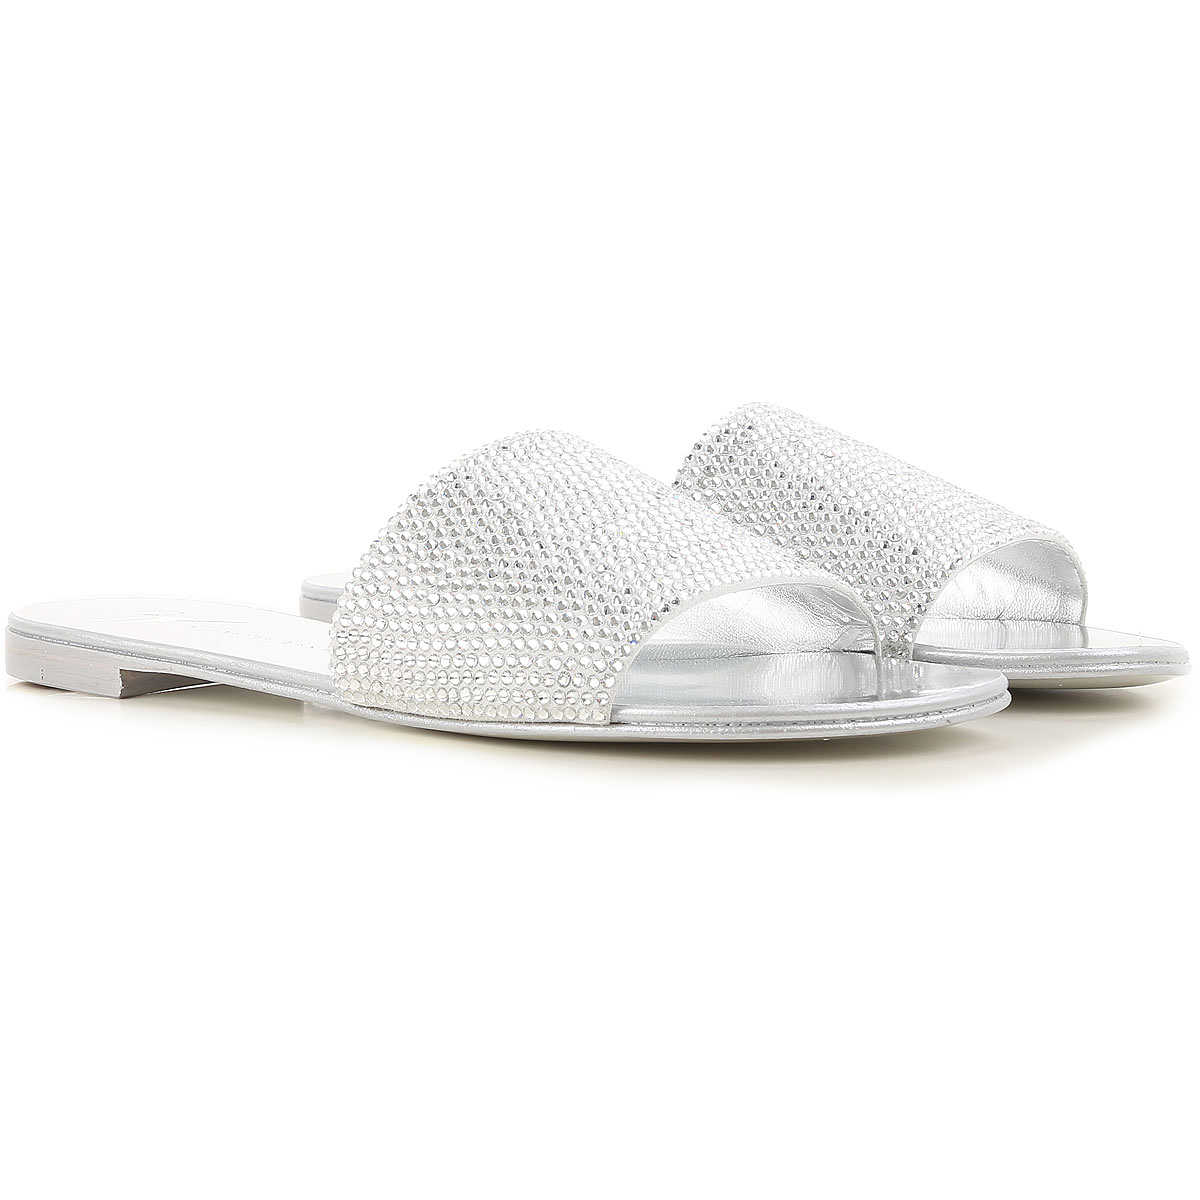 Giuseppe Zanotti Design Sandals for Women On Sale in Outlet Silver - GOOFASH